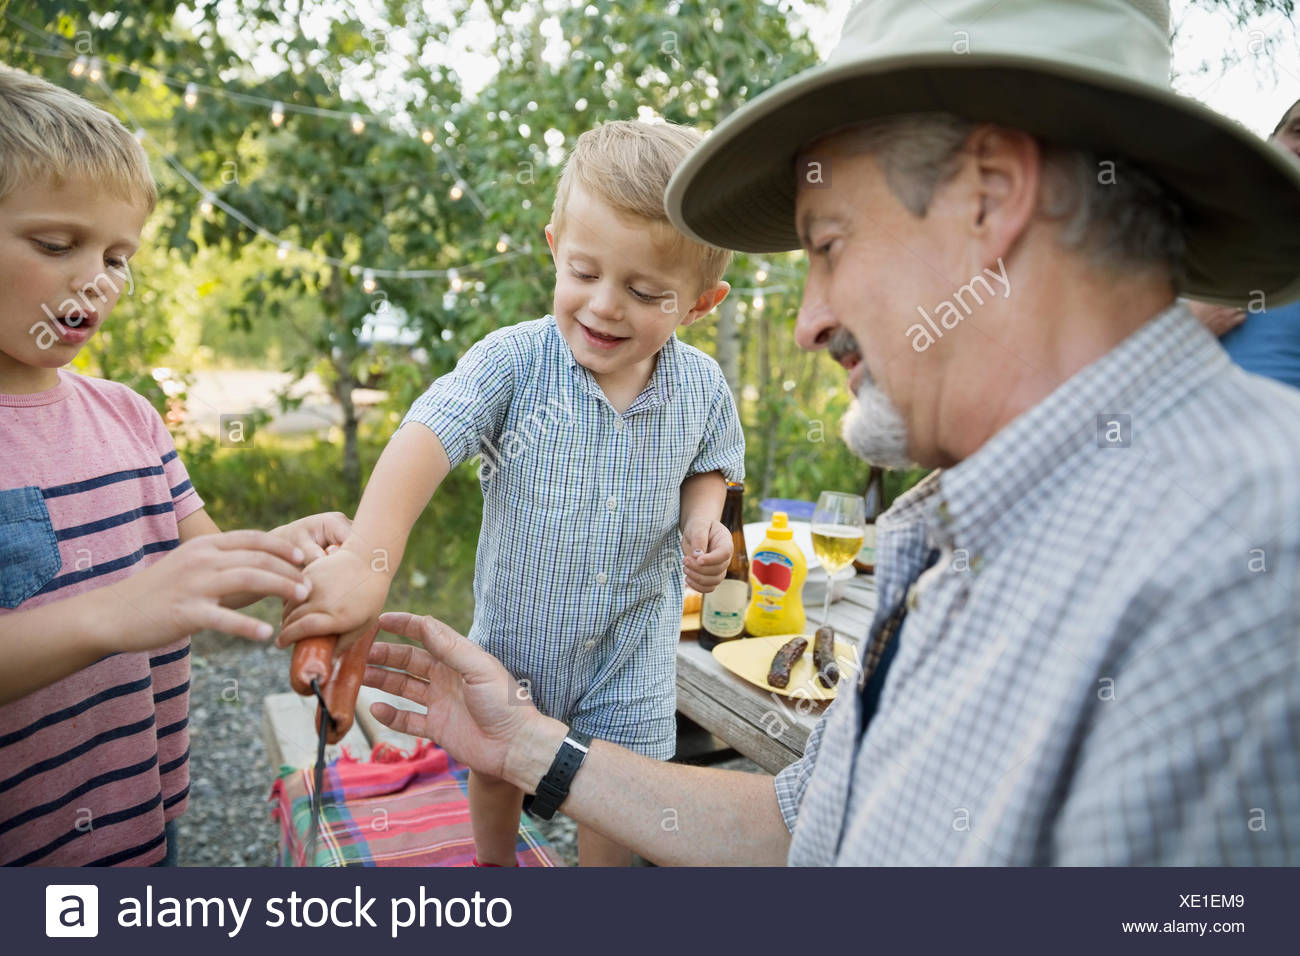 Close up grandfather and grandsons barbecuing hot dogs - Stock Image